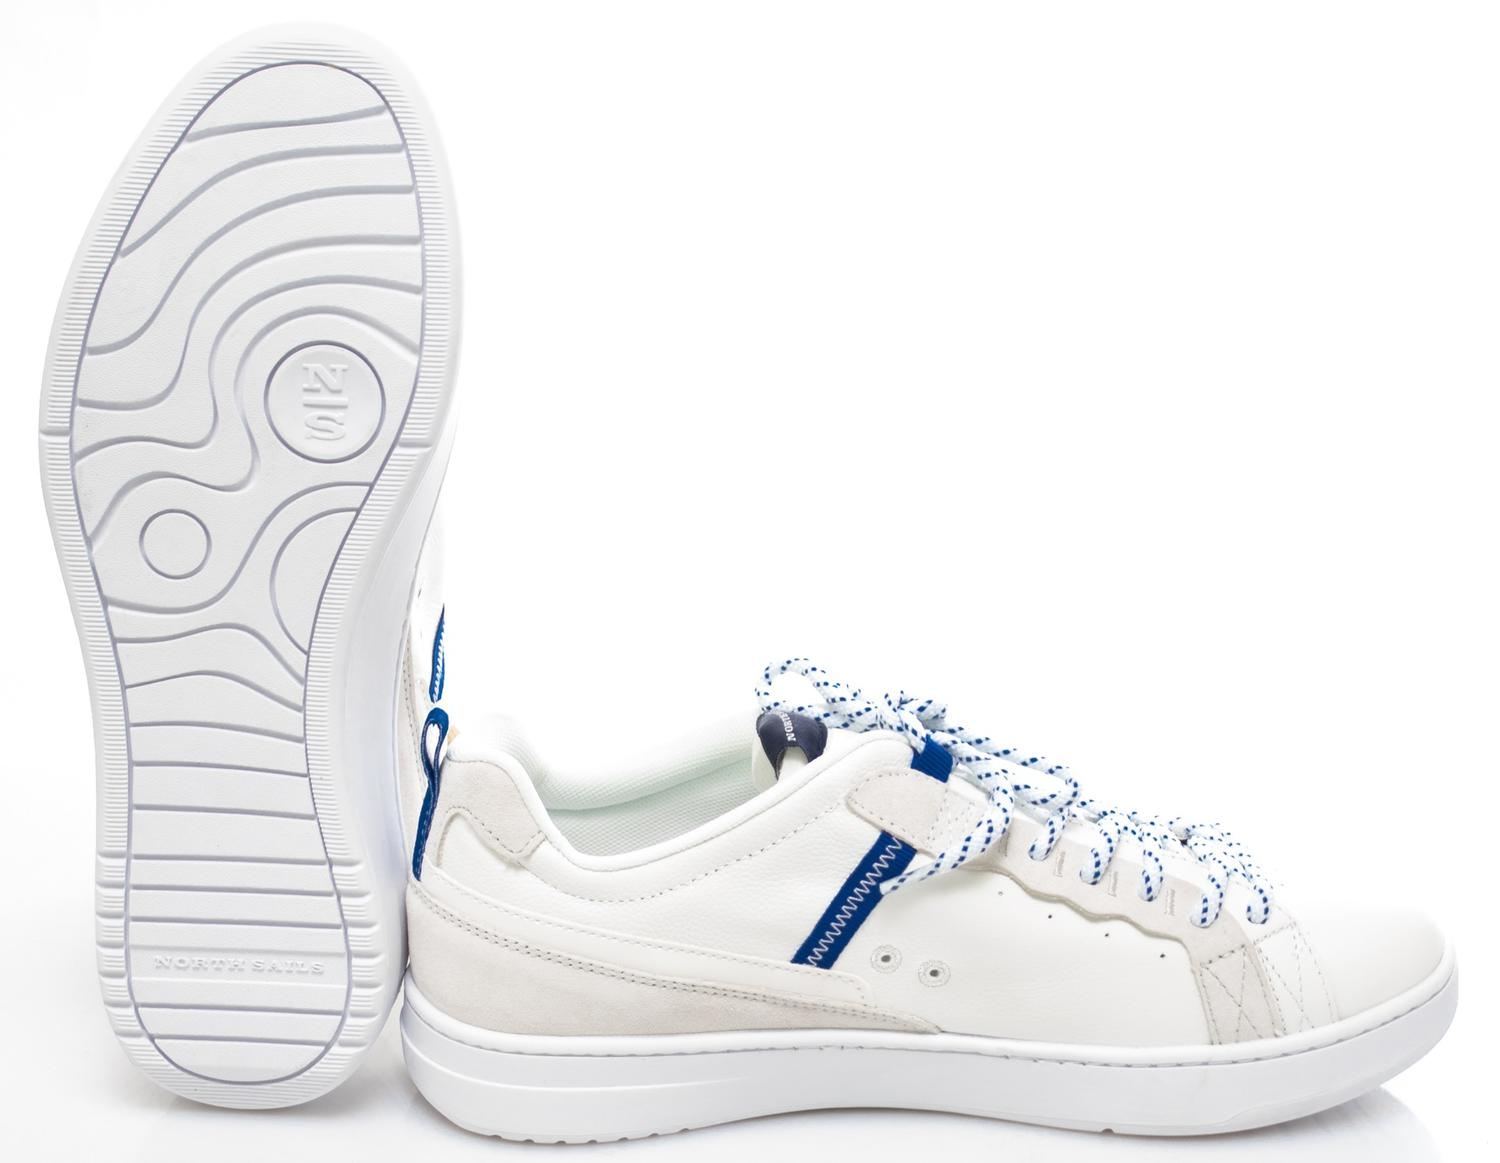 Chaussures Homme -  ONE TW Baskets en cuir